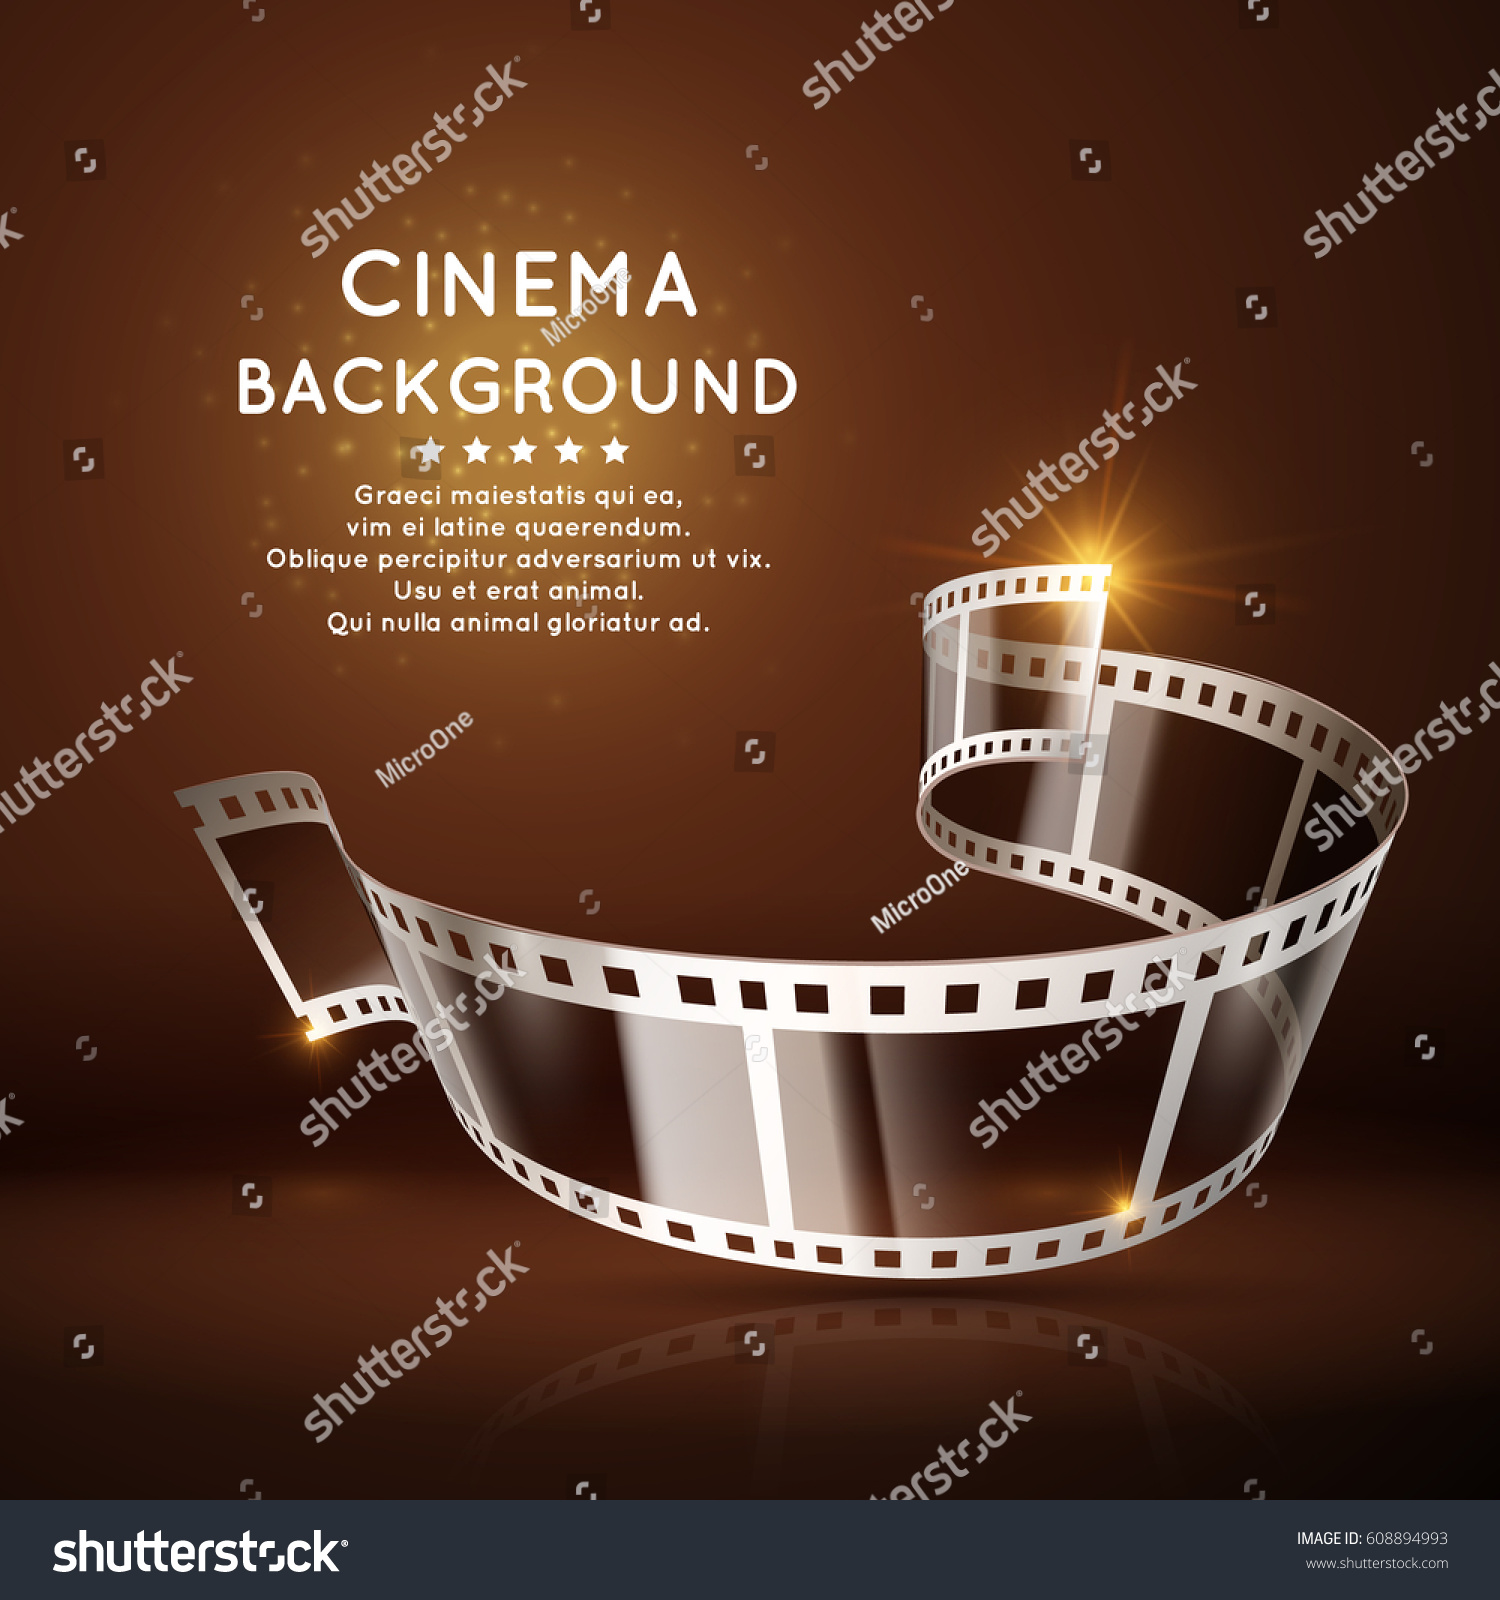 vector movie poster film 35 mm roll stock vector royalty free